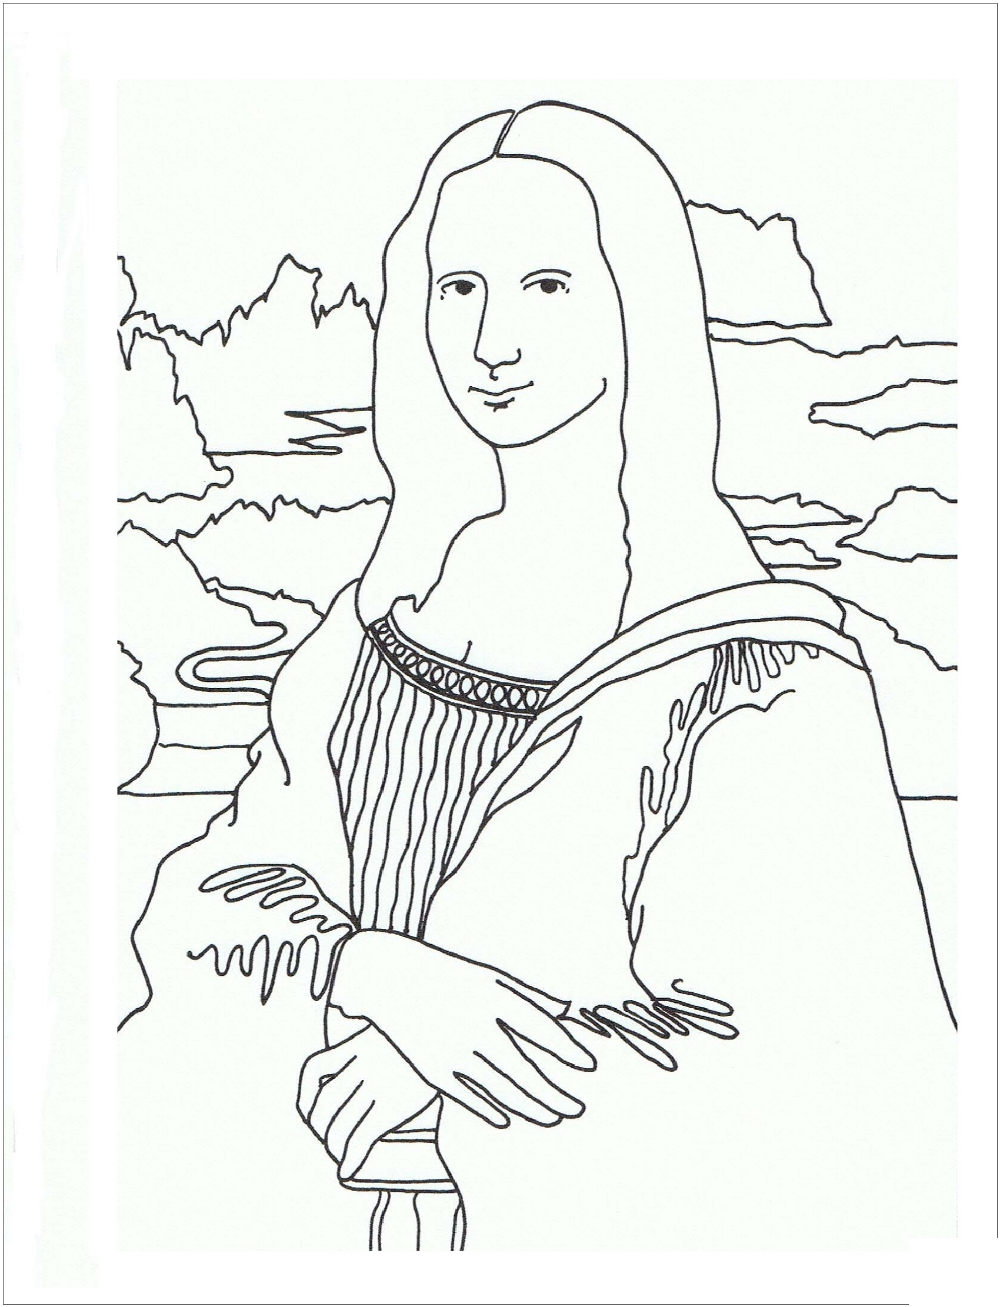 Mona Lisa Coloring Page Printable Disney Princess Coloring Pages Summer Coloring Pages Princess Coloring Pages